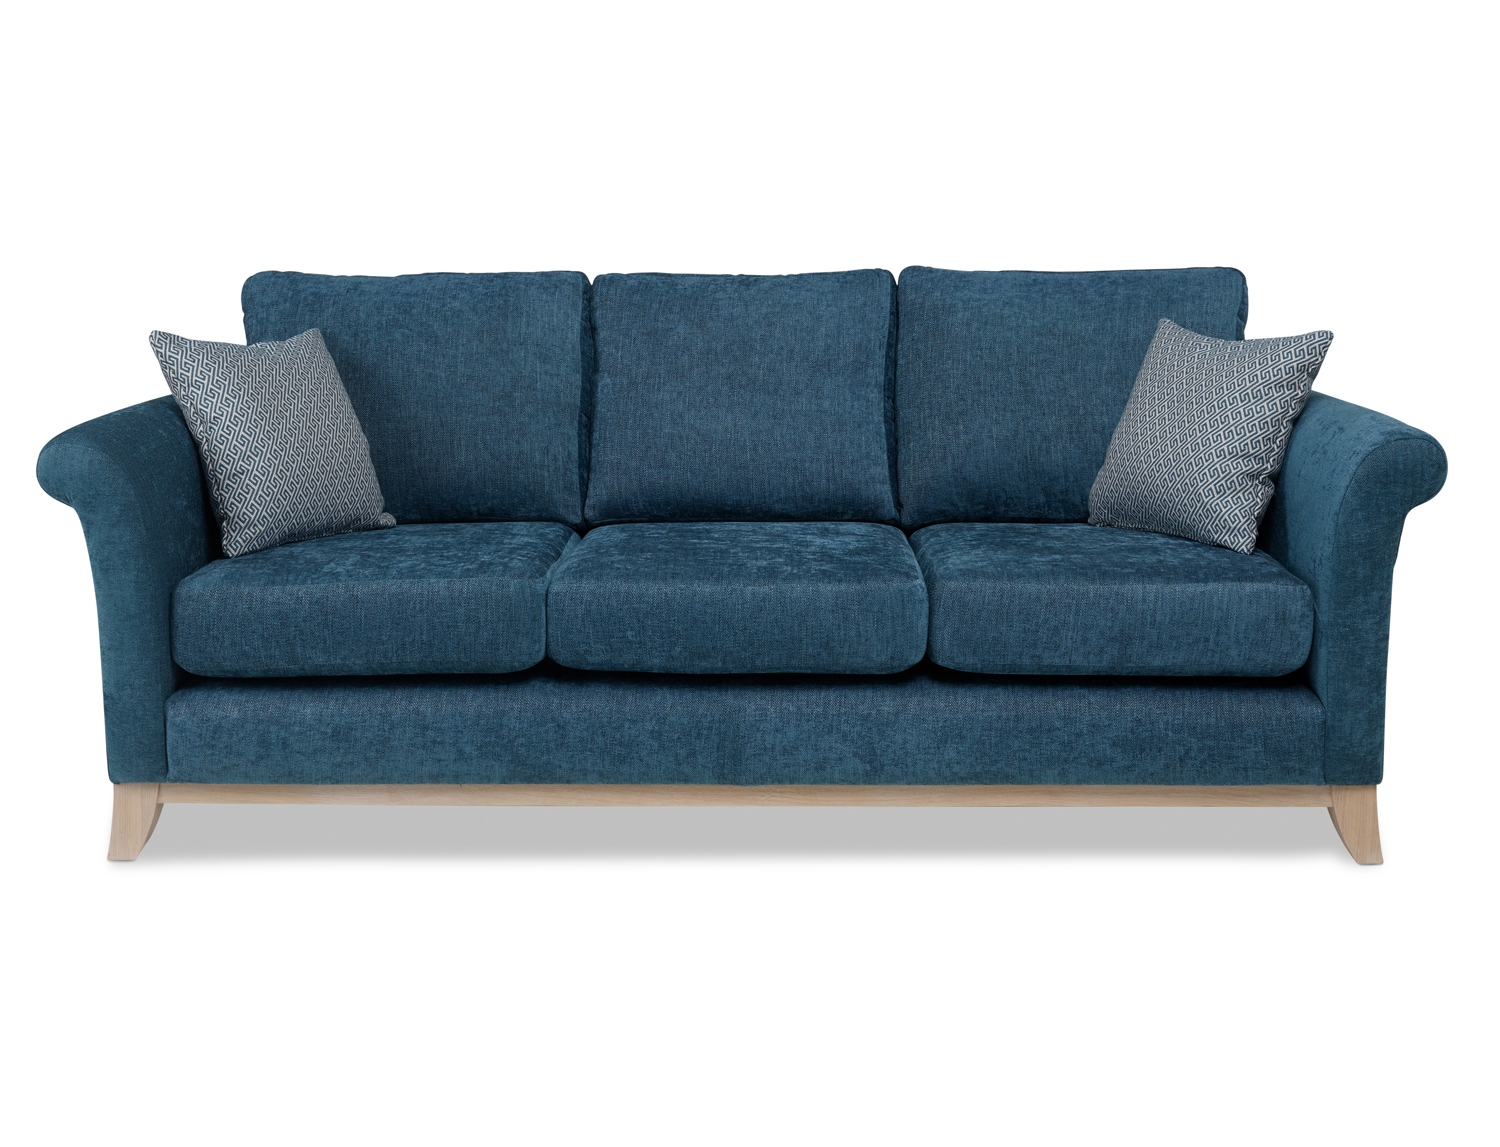 3 Seater (Available in 2 or 3 cushion)